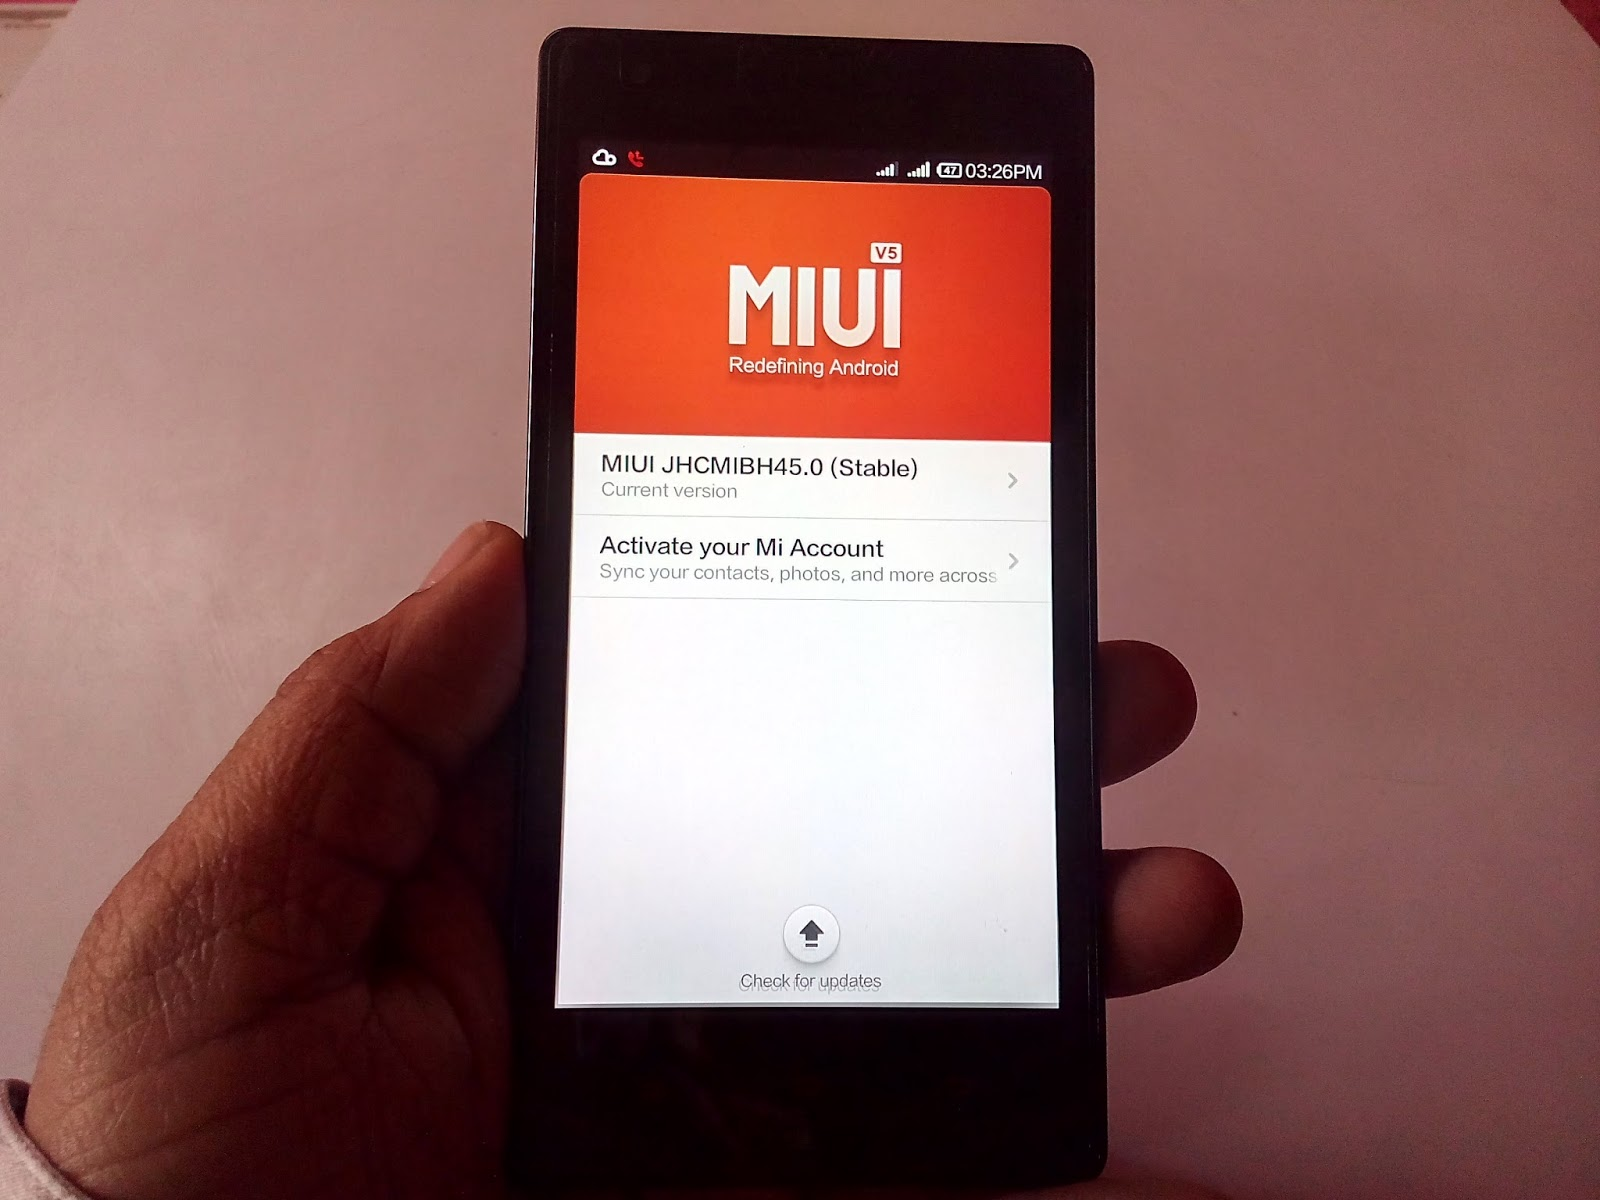 Update Latest MIUI for (Redmi 1S/ Redmi Note 4G/Mi3, /Mi Note)